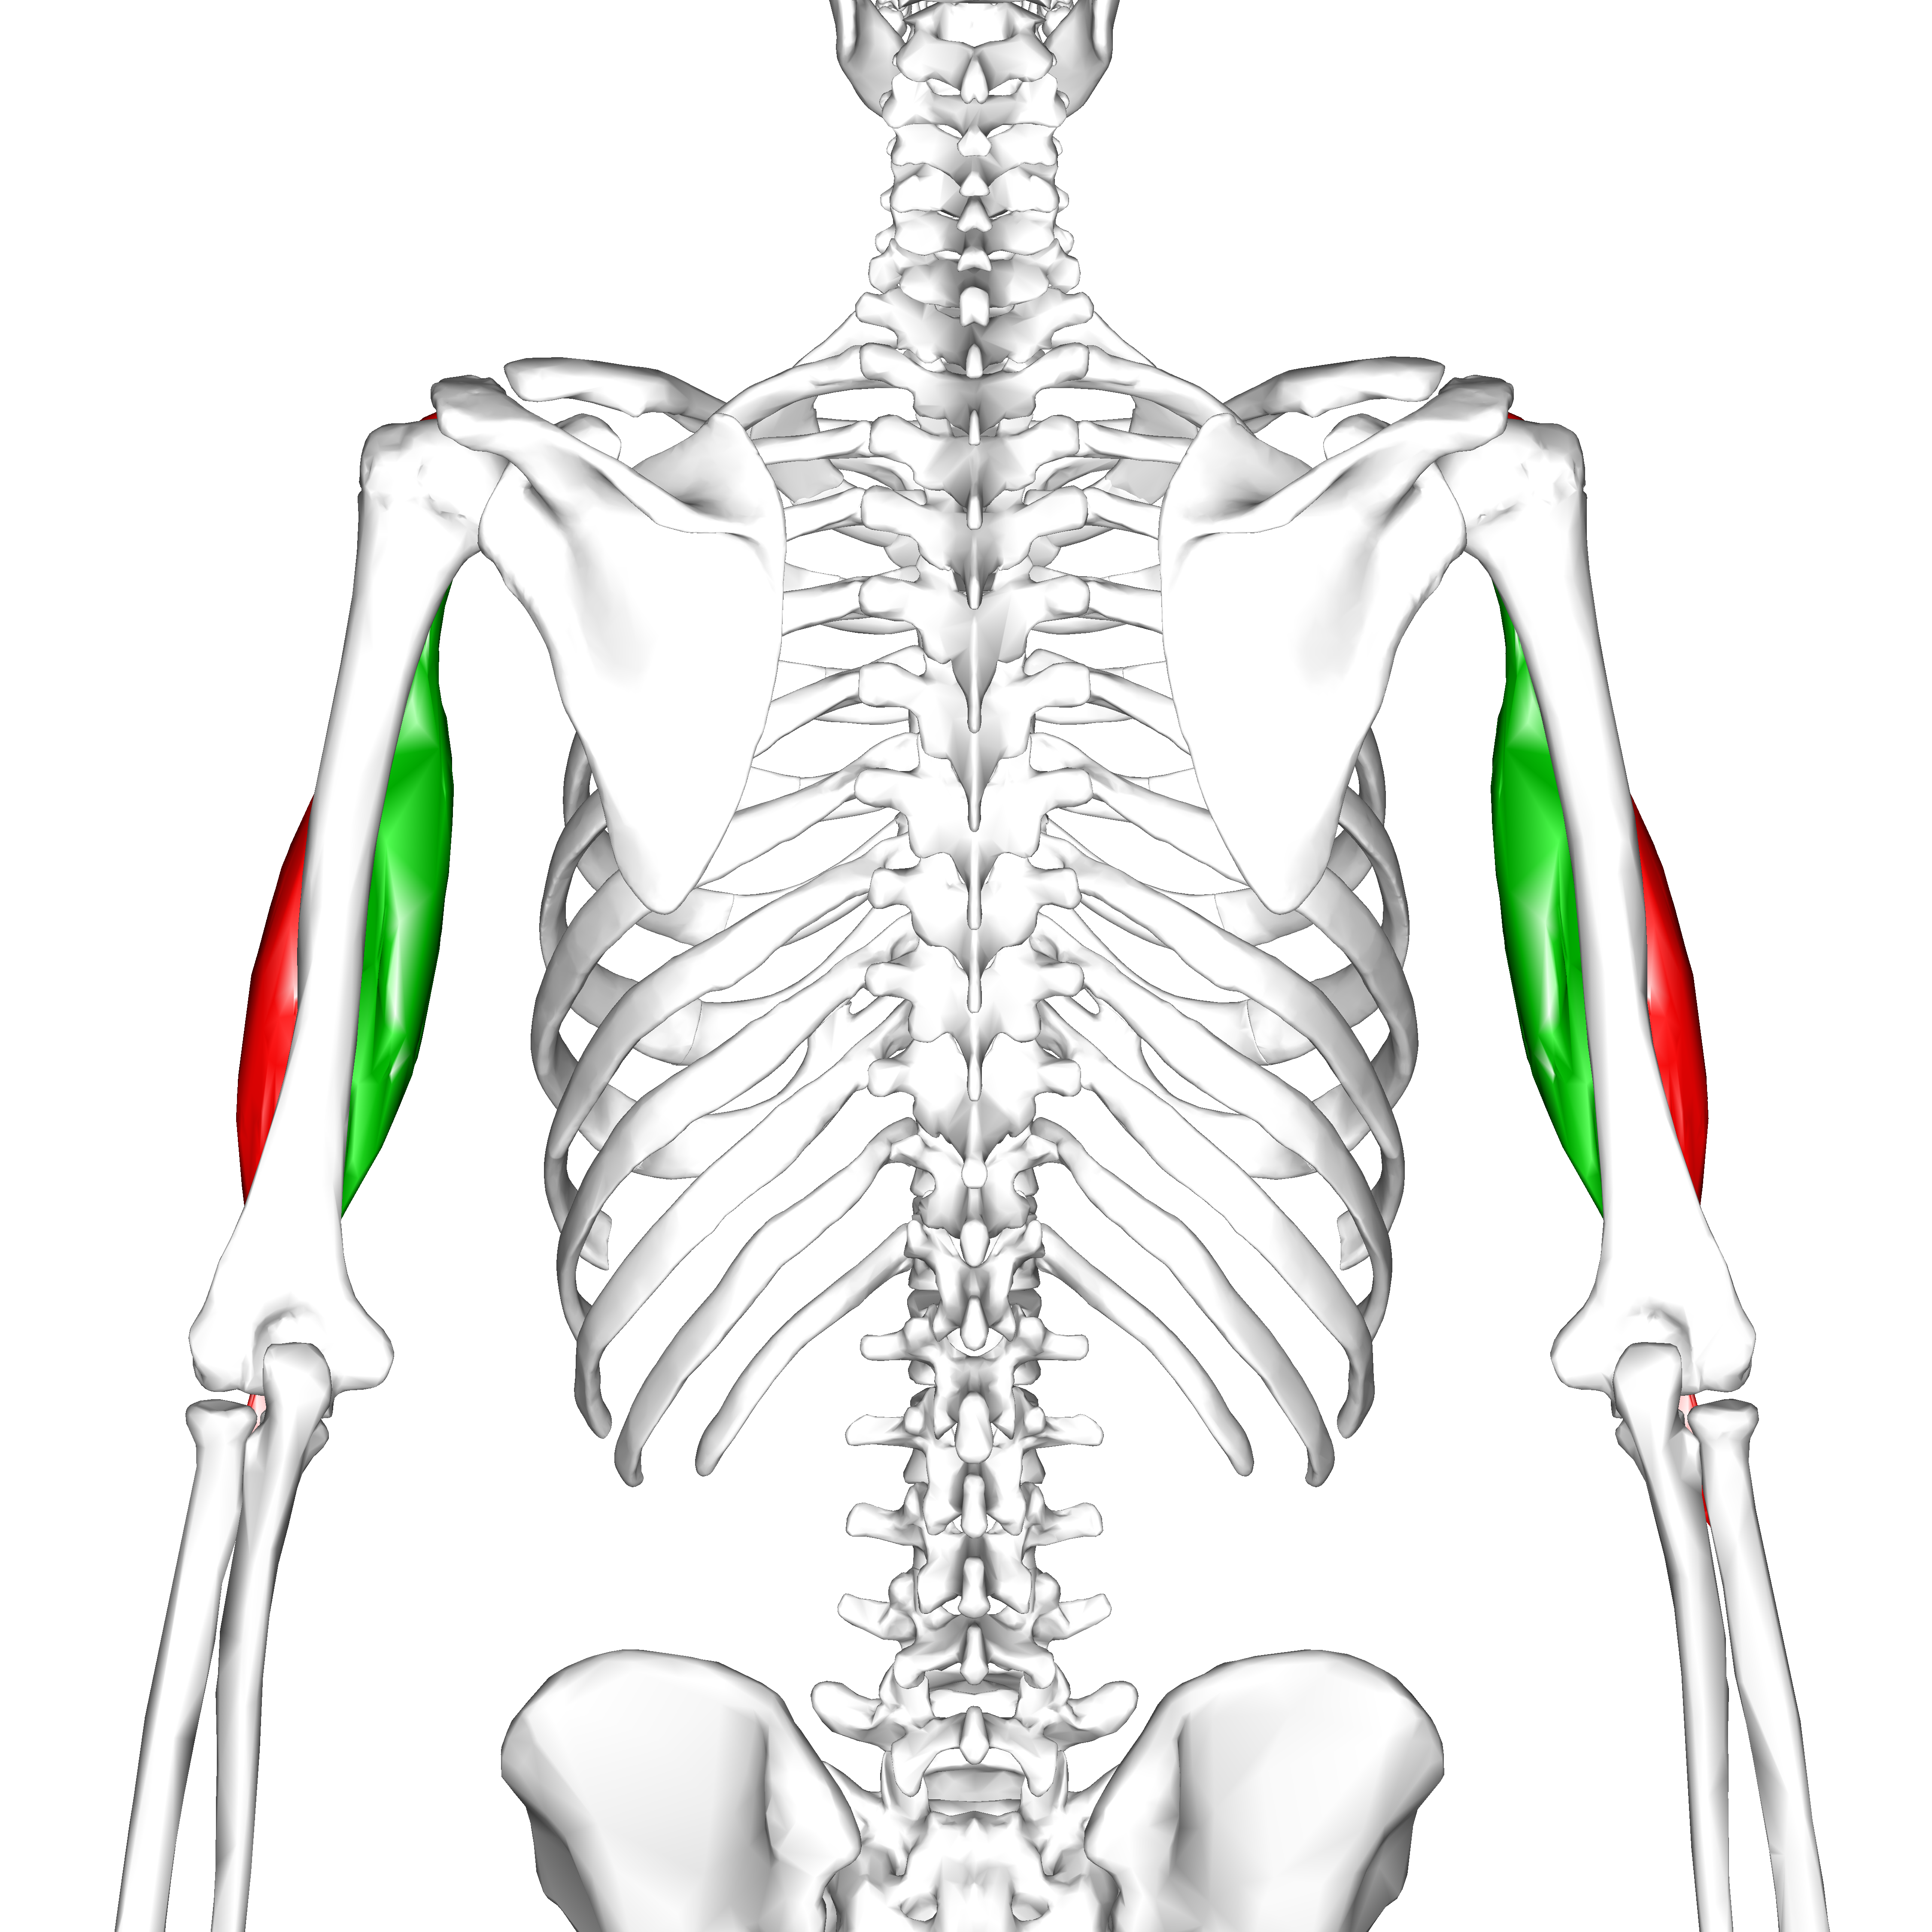 File:Biceps brachii muscle10.png - Wikimedia Commons